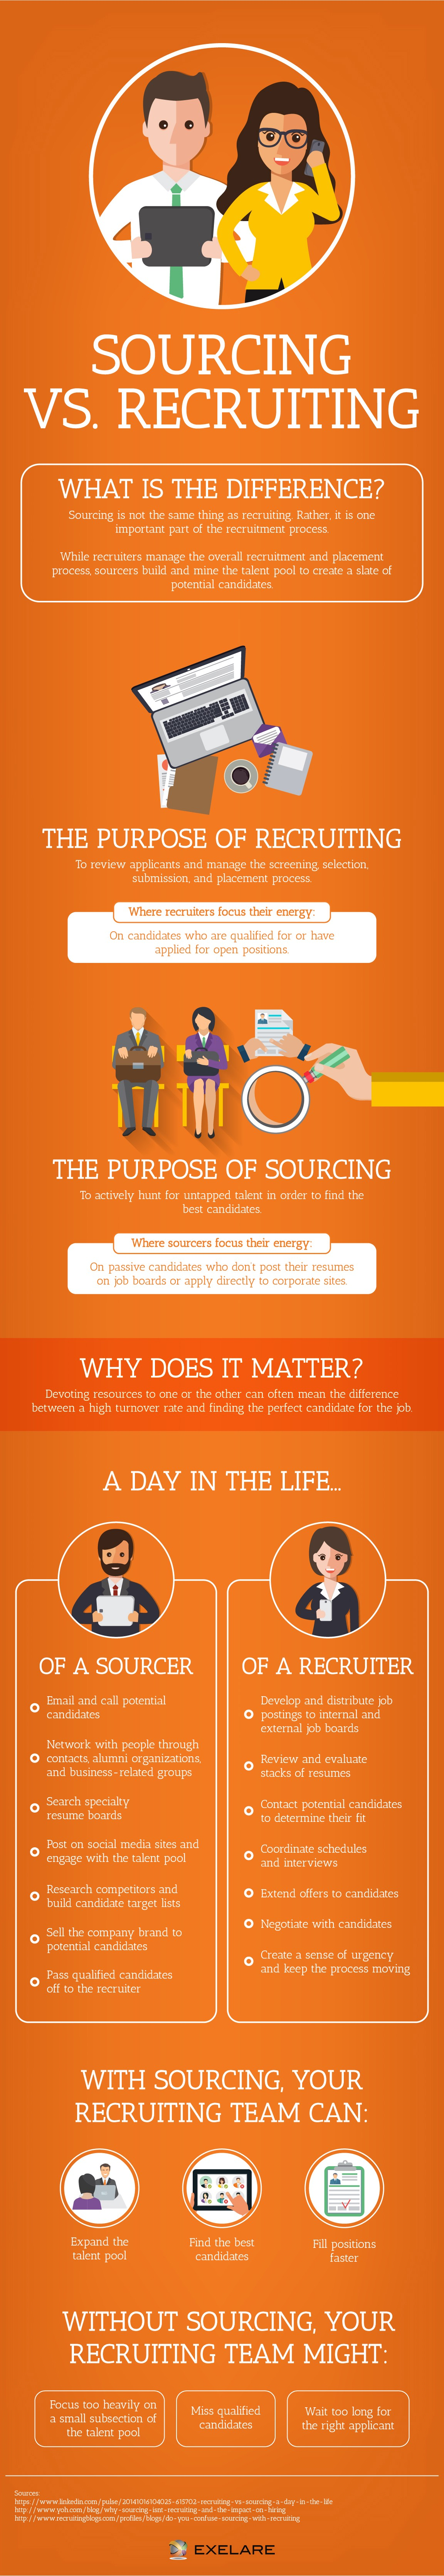 Infographic Depicting the Main Differences Between Recruiting and Sourcing